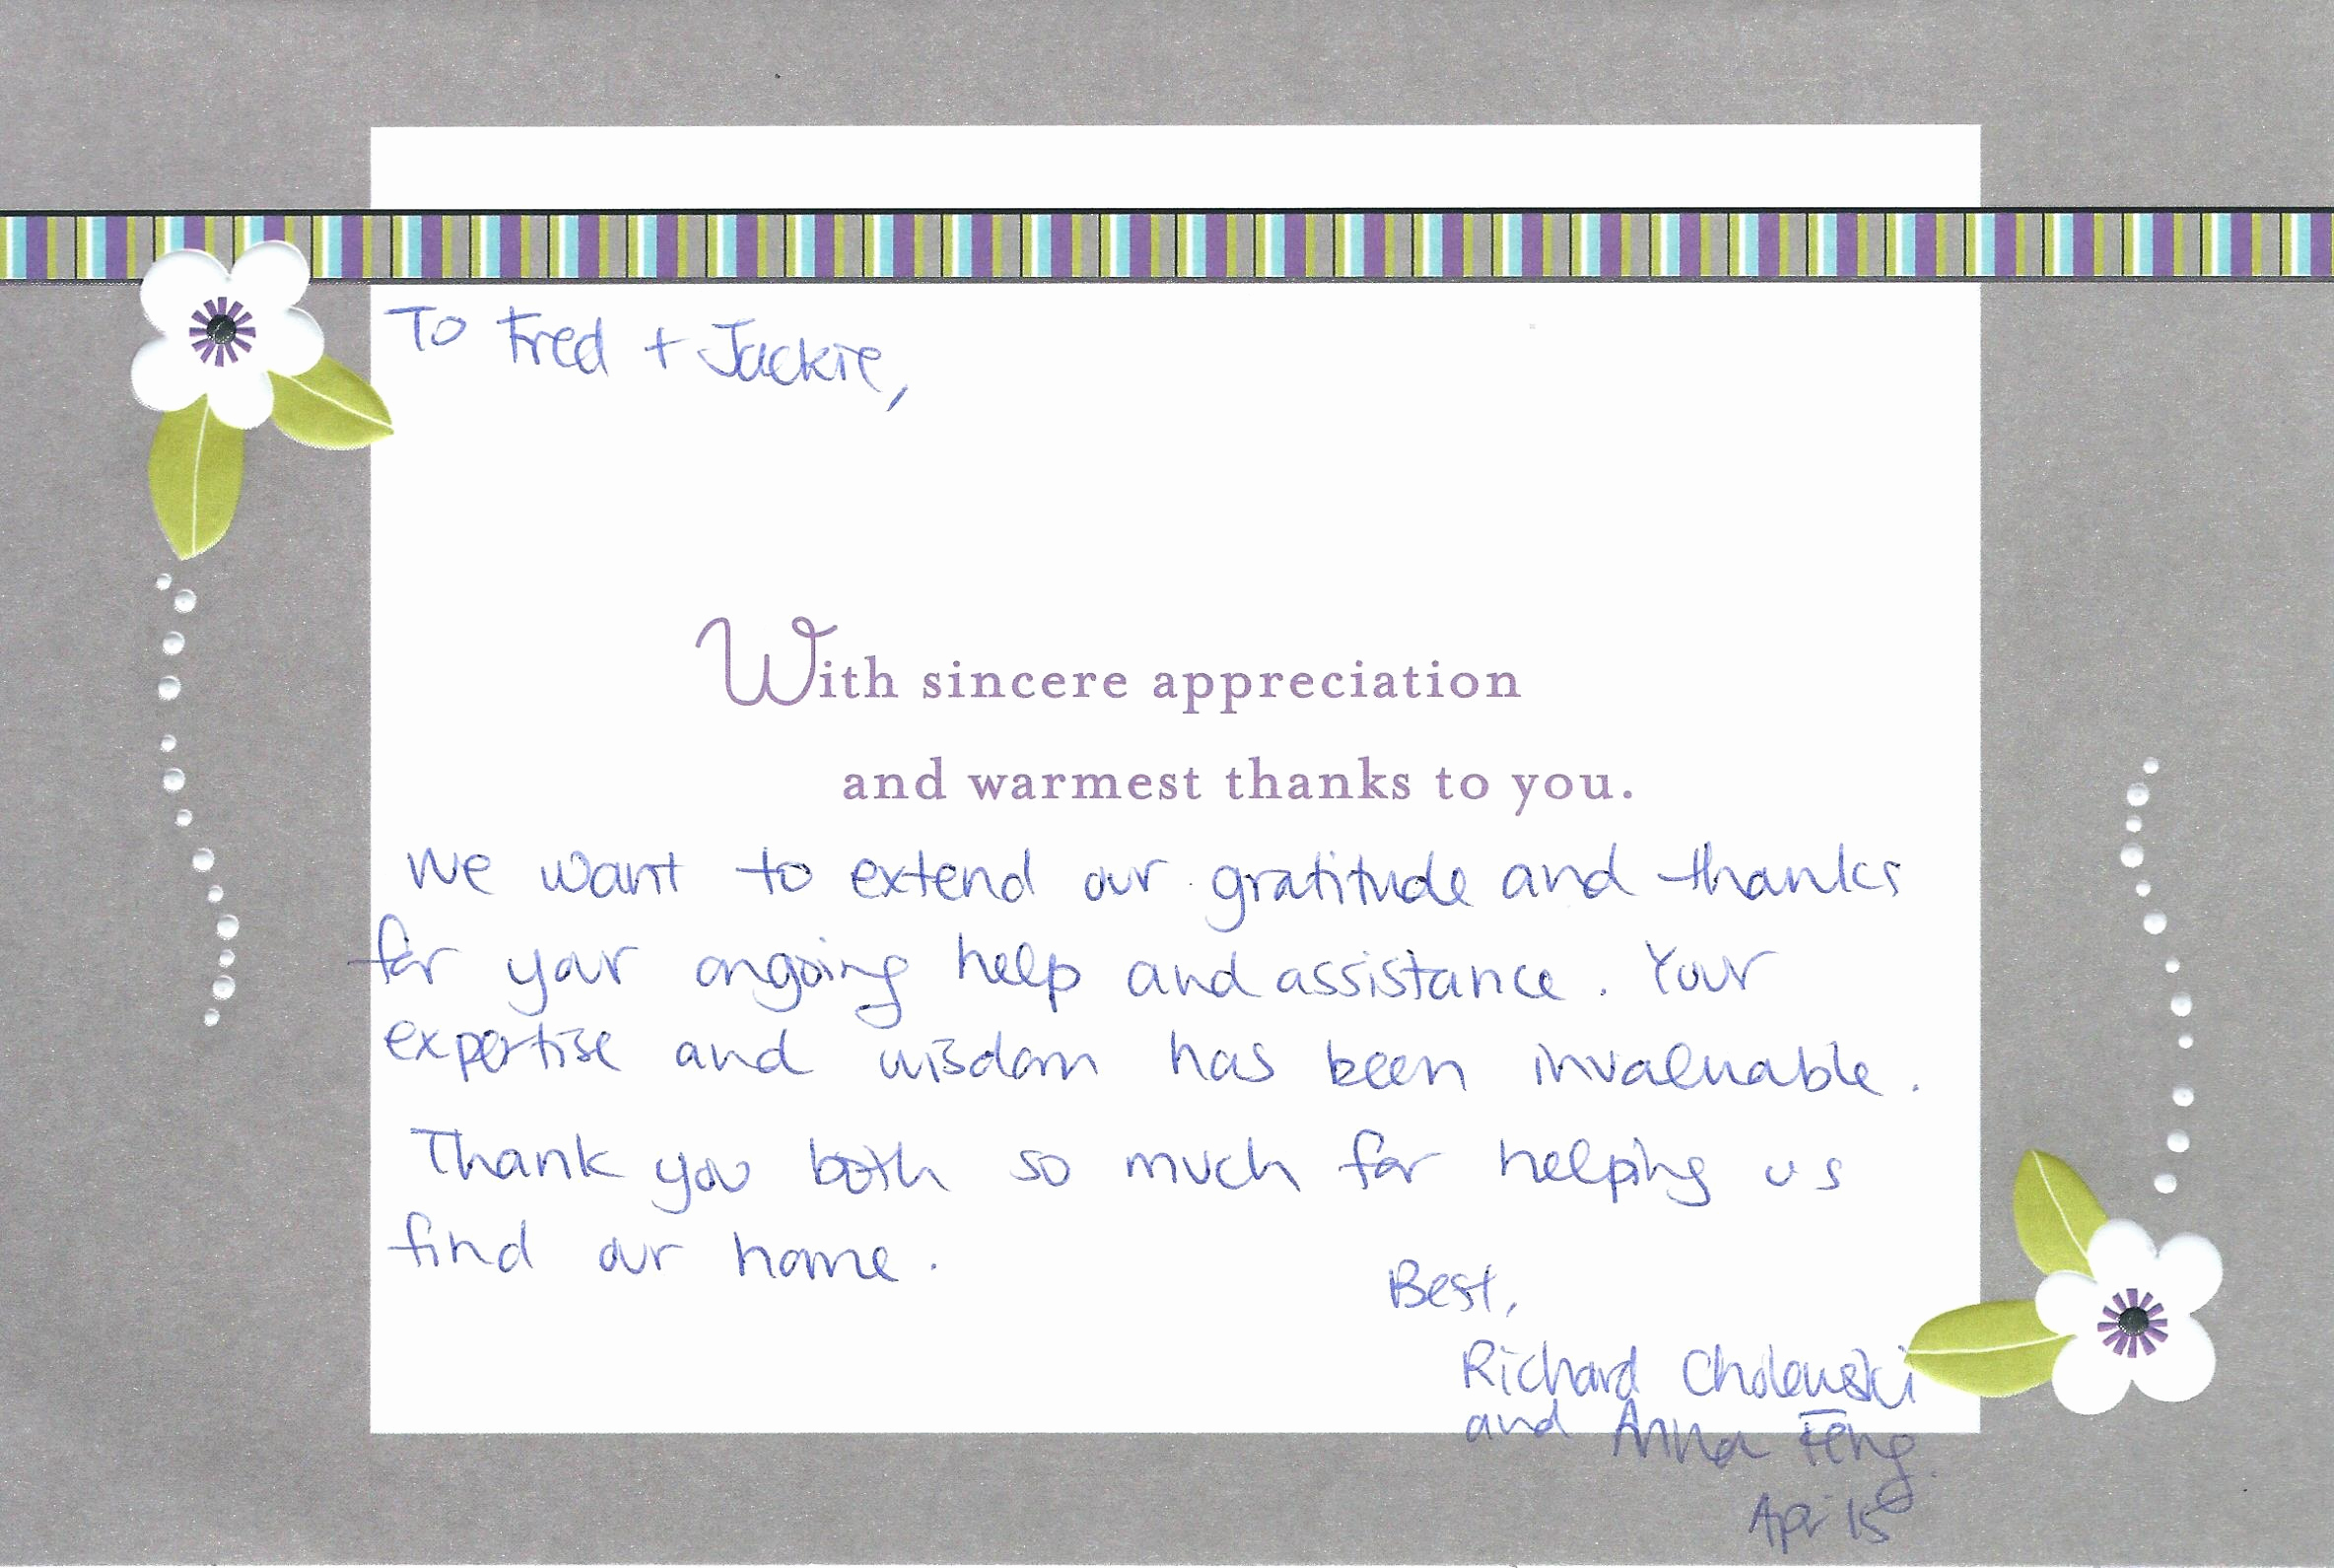 Real Estate Thank You Notes Lovely with sincere Appreciation and Warmest Thanks